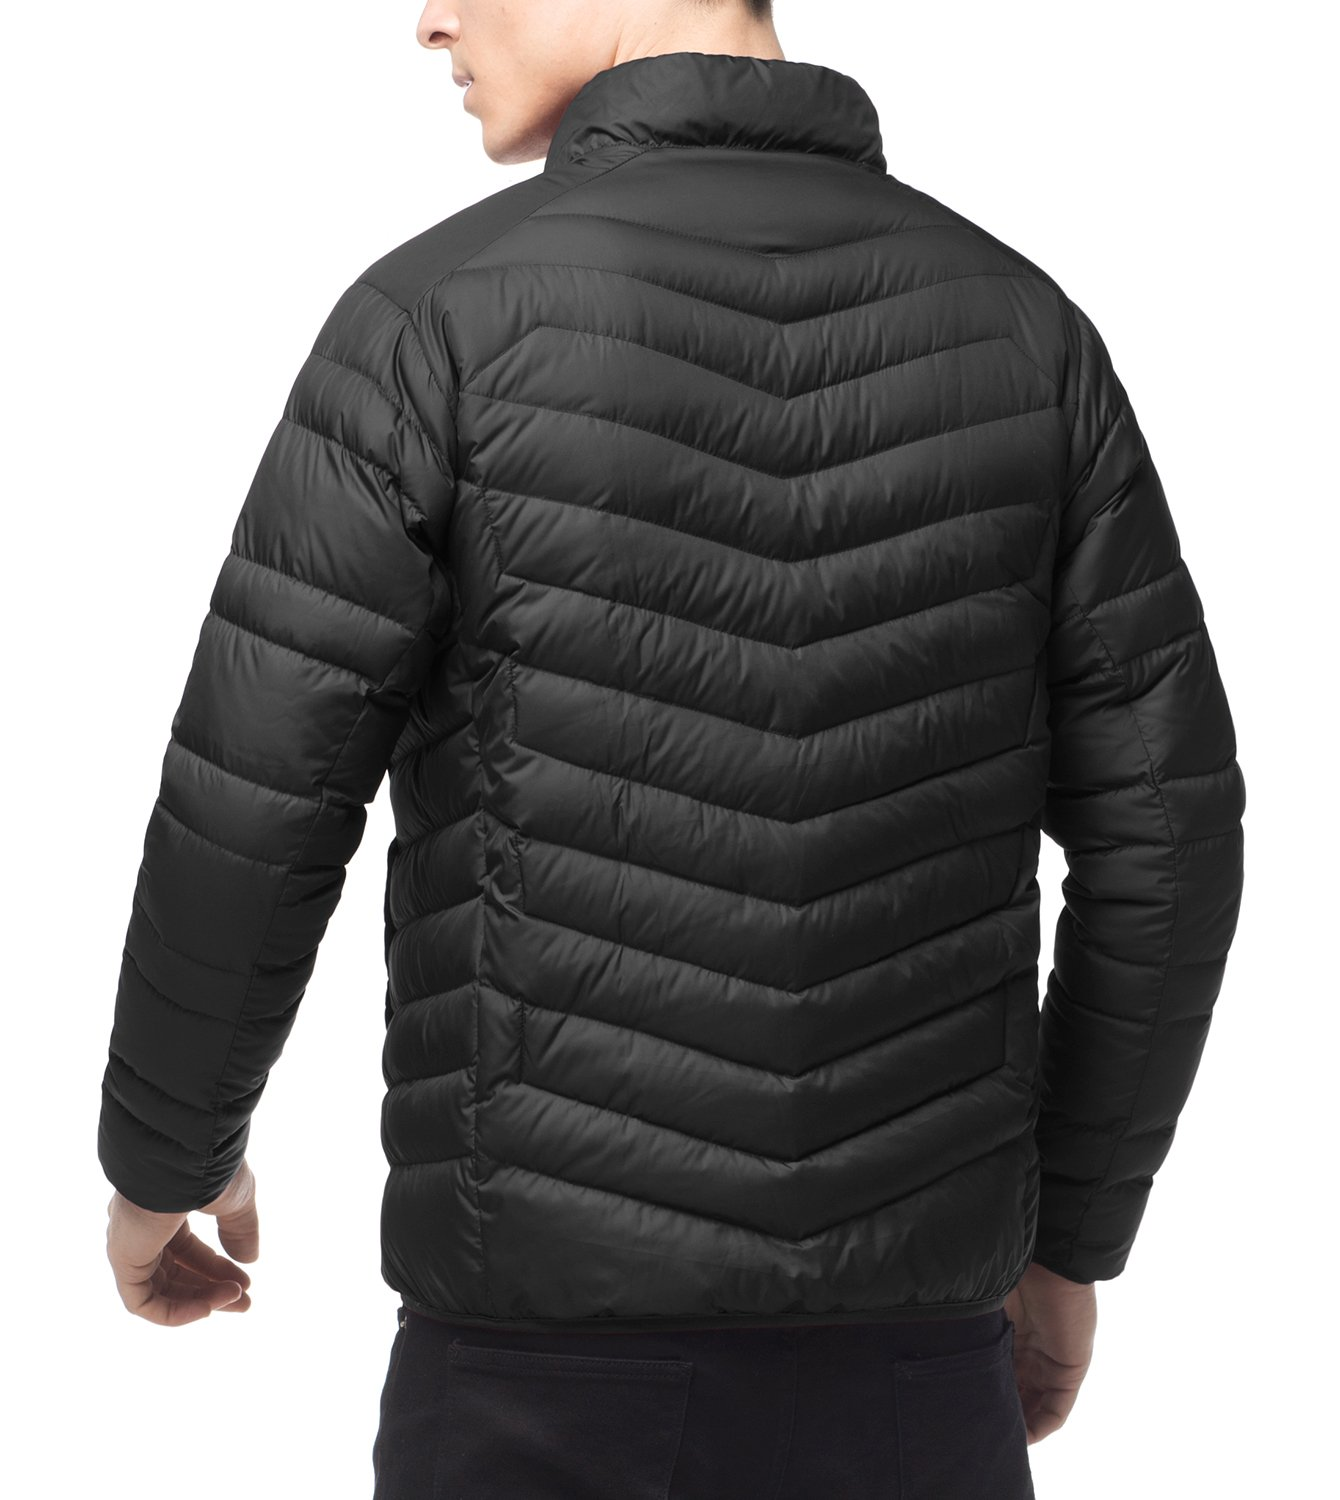 LAPASA Men's Down Jacket 600FP Packable Down Filled Jacket with Side Pockets YKK Zipped Men's Outdoor Winter Down Coats for Travel Hiking Climbing Skiing Casual M32 1